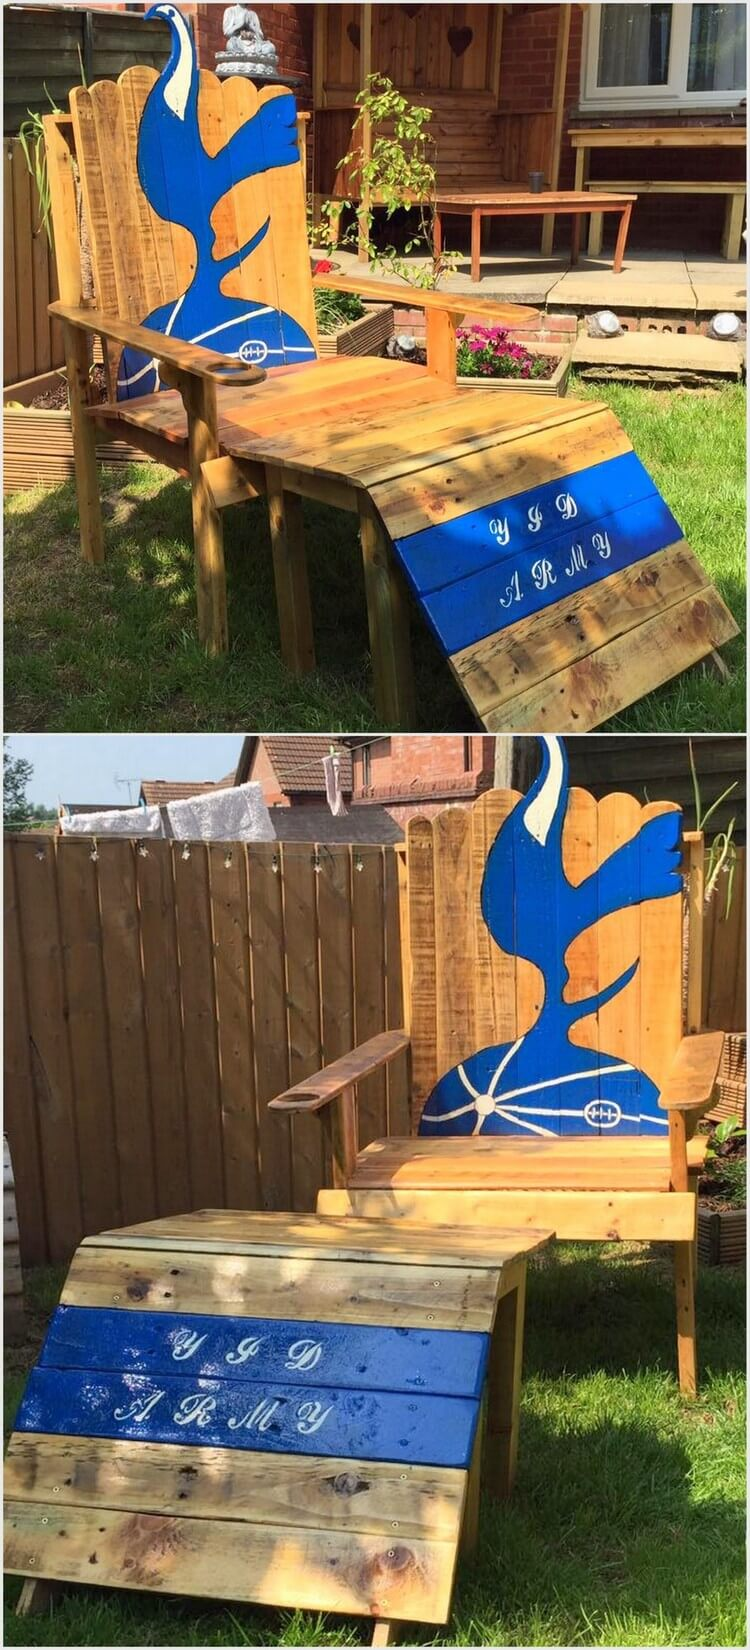 Artistic Wood Pallet Chair and Table